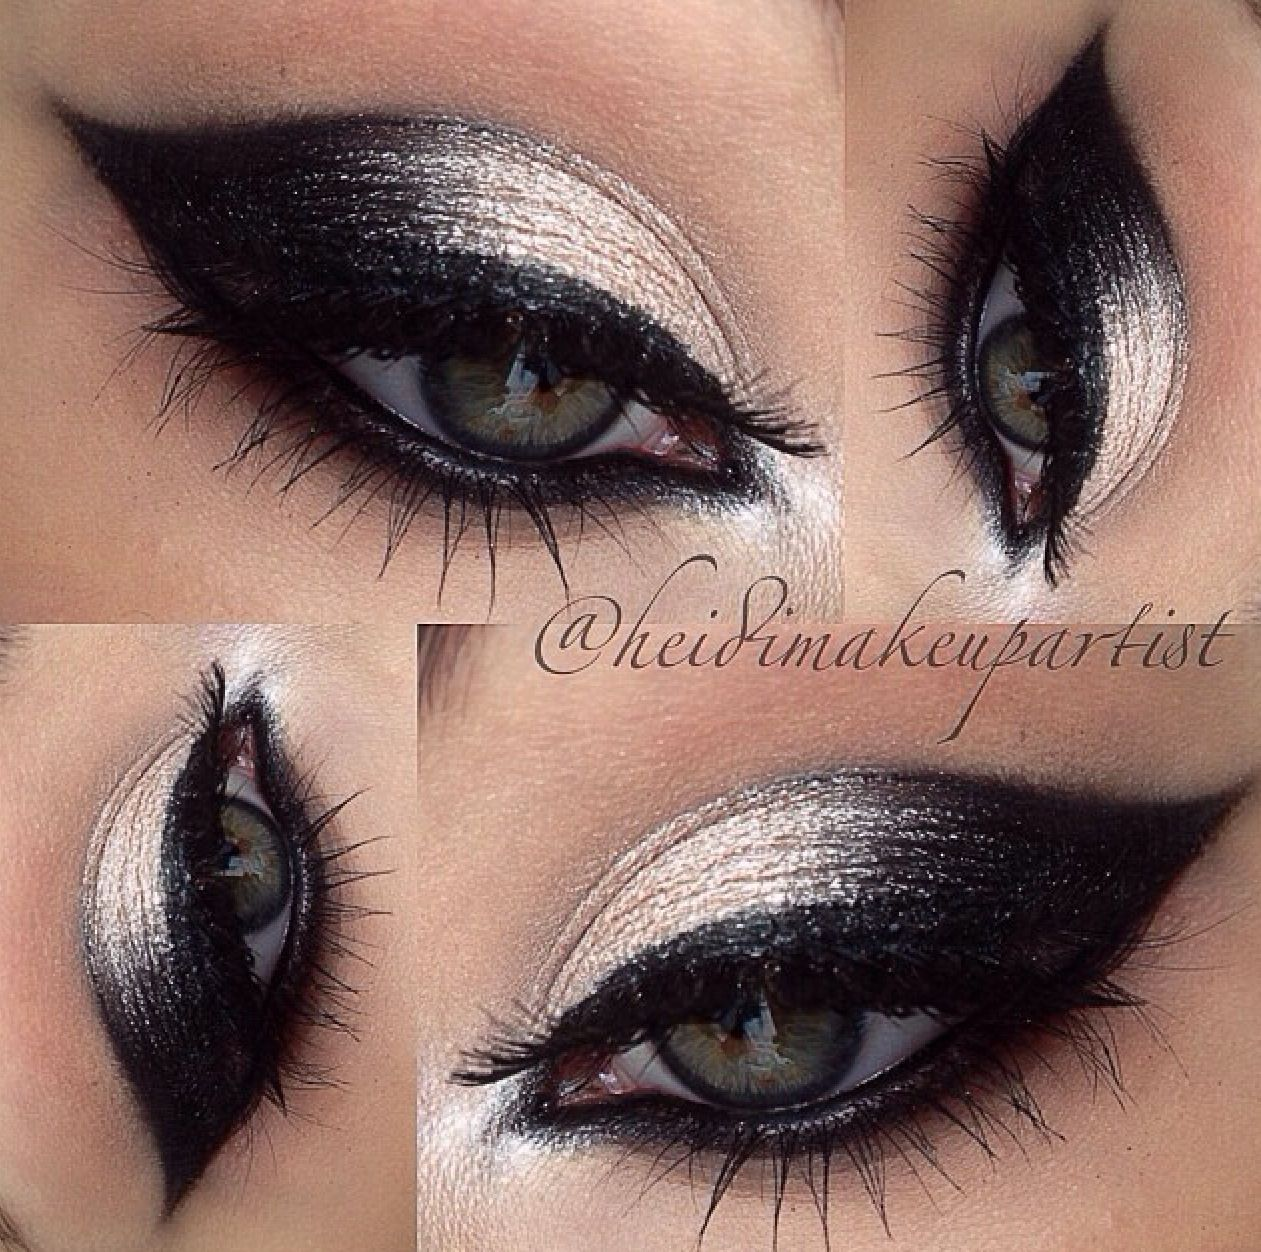 Cool Eye Makeup Unique Shape It S Refreshing To See Something So